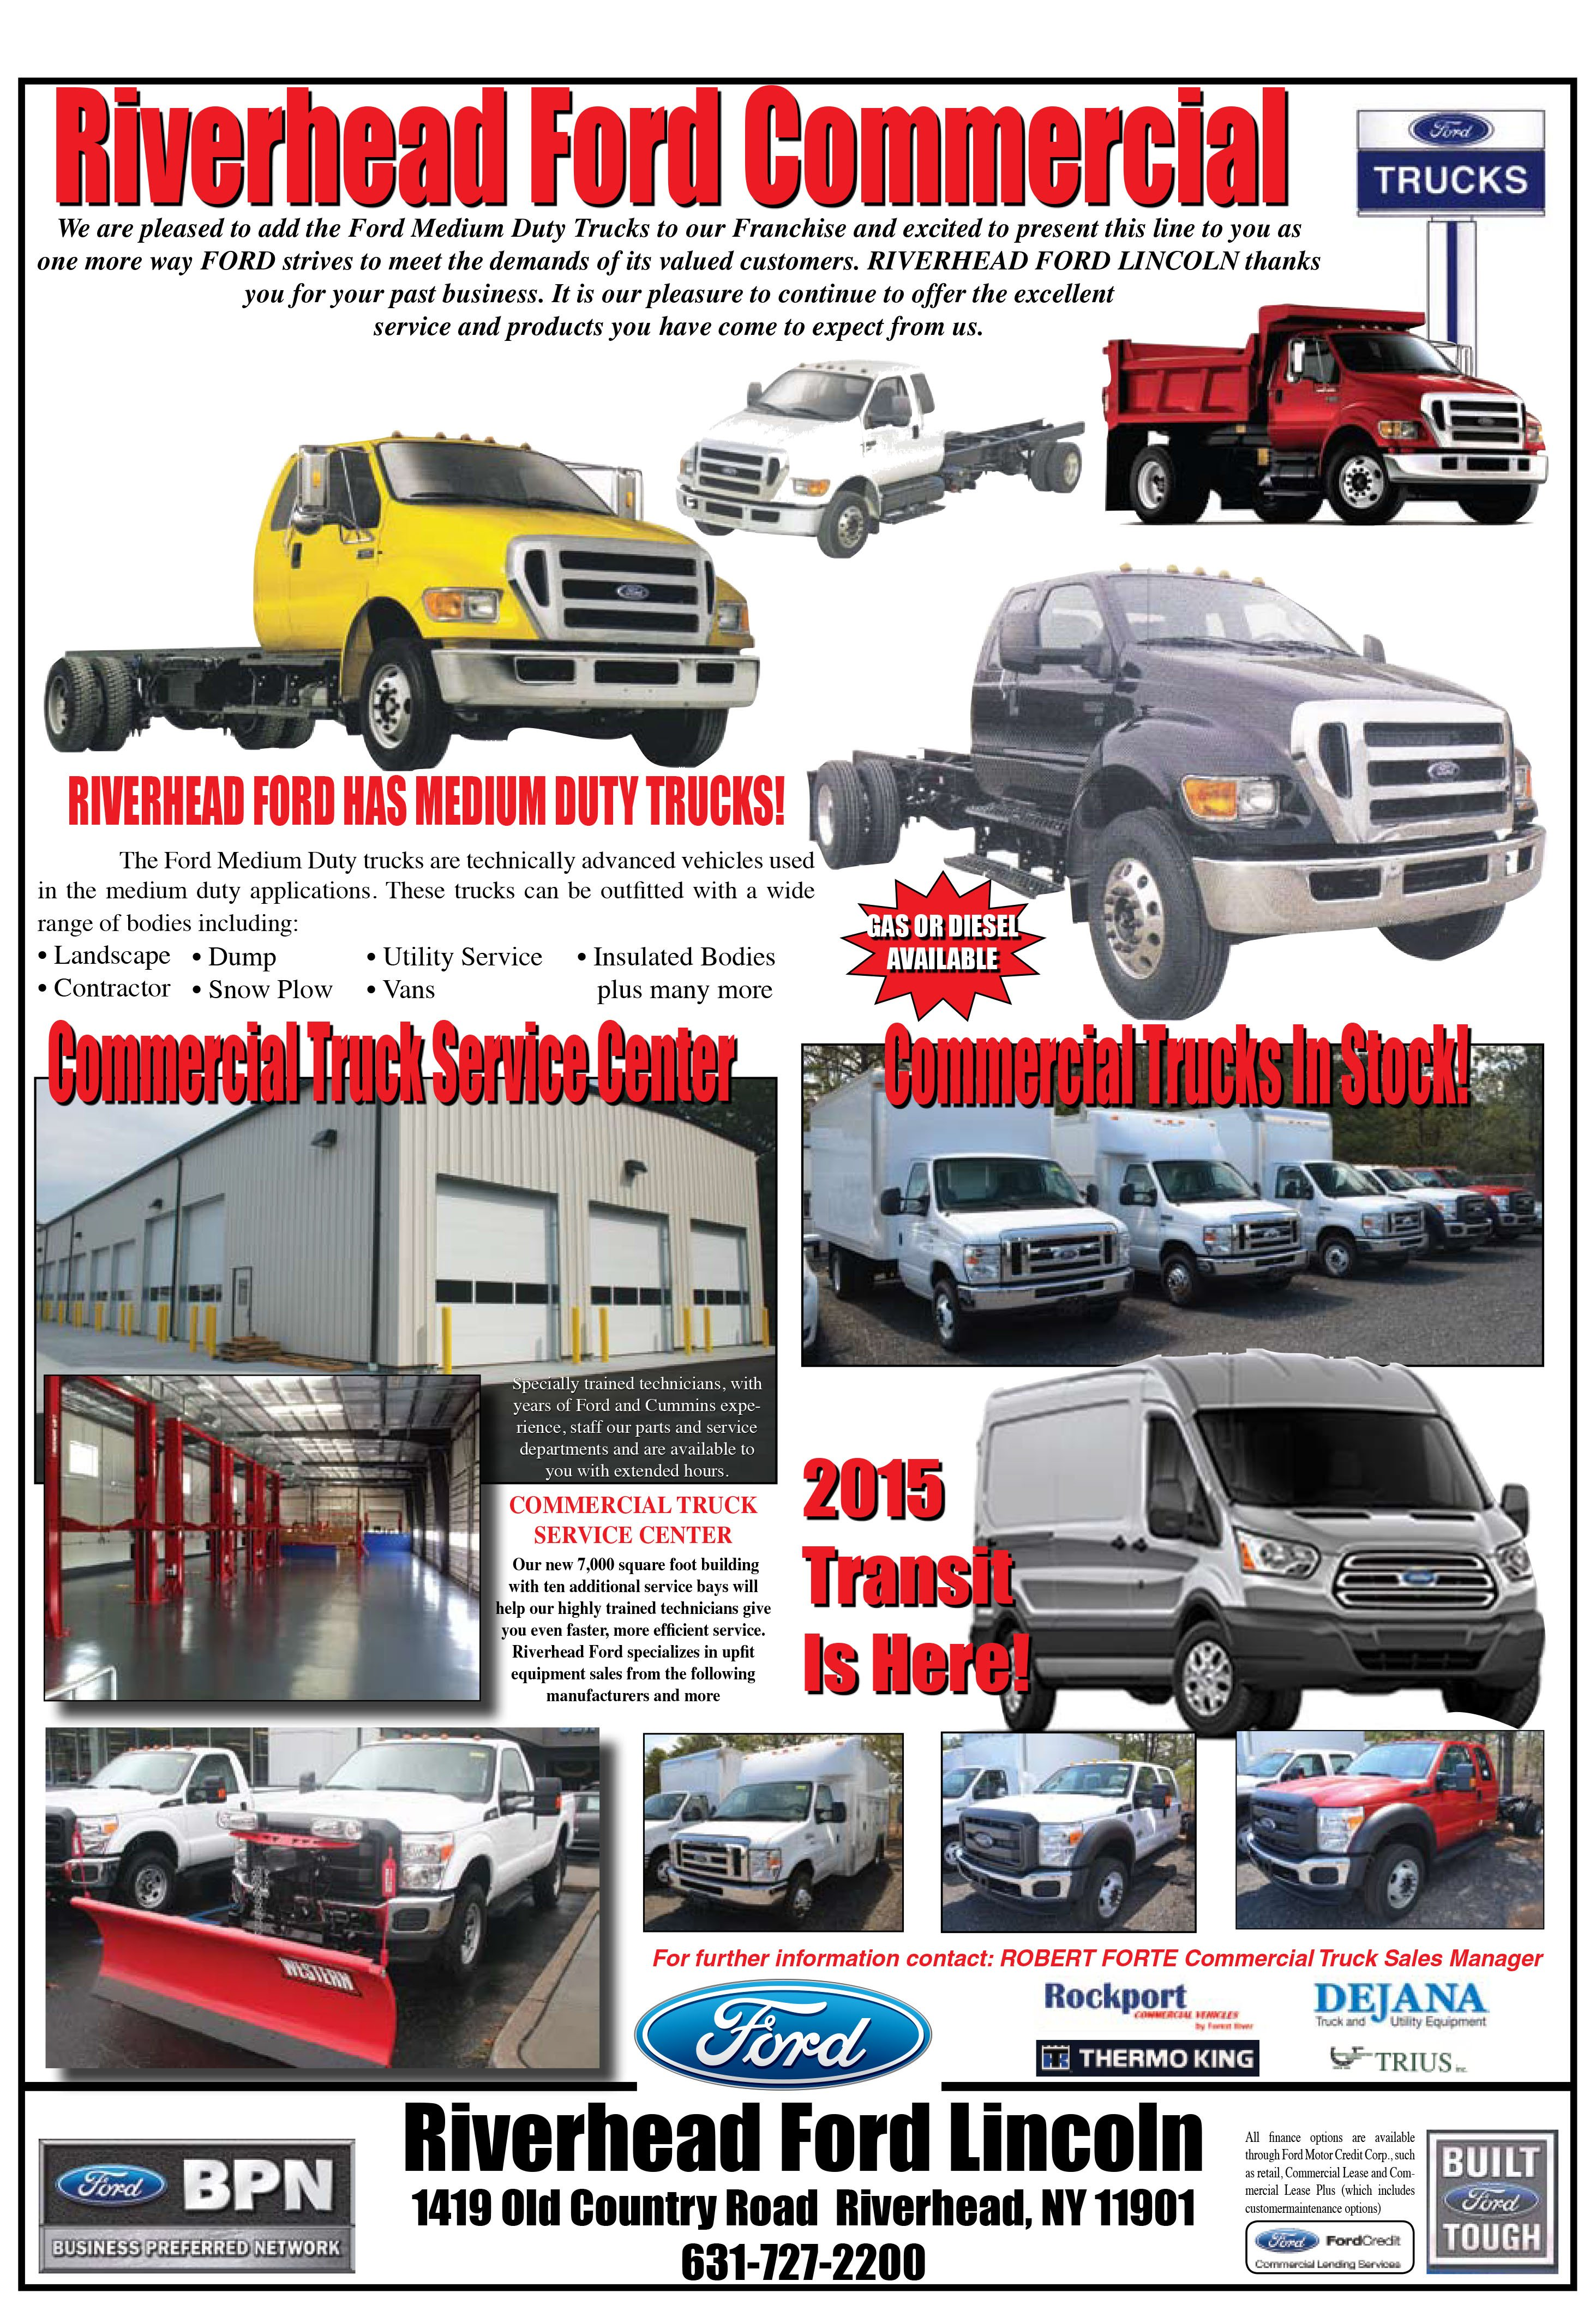 Riverhead Ford Lincoln   Commercial Truck Service Center   Ford ...